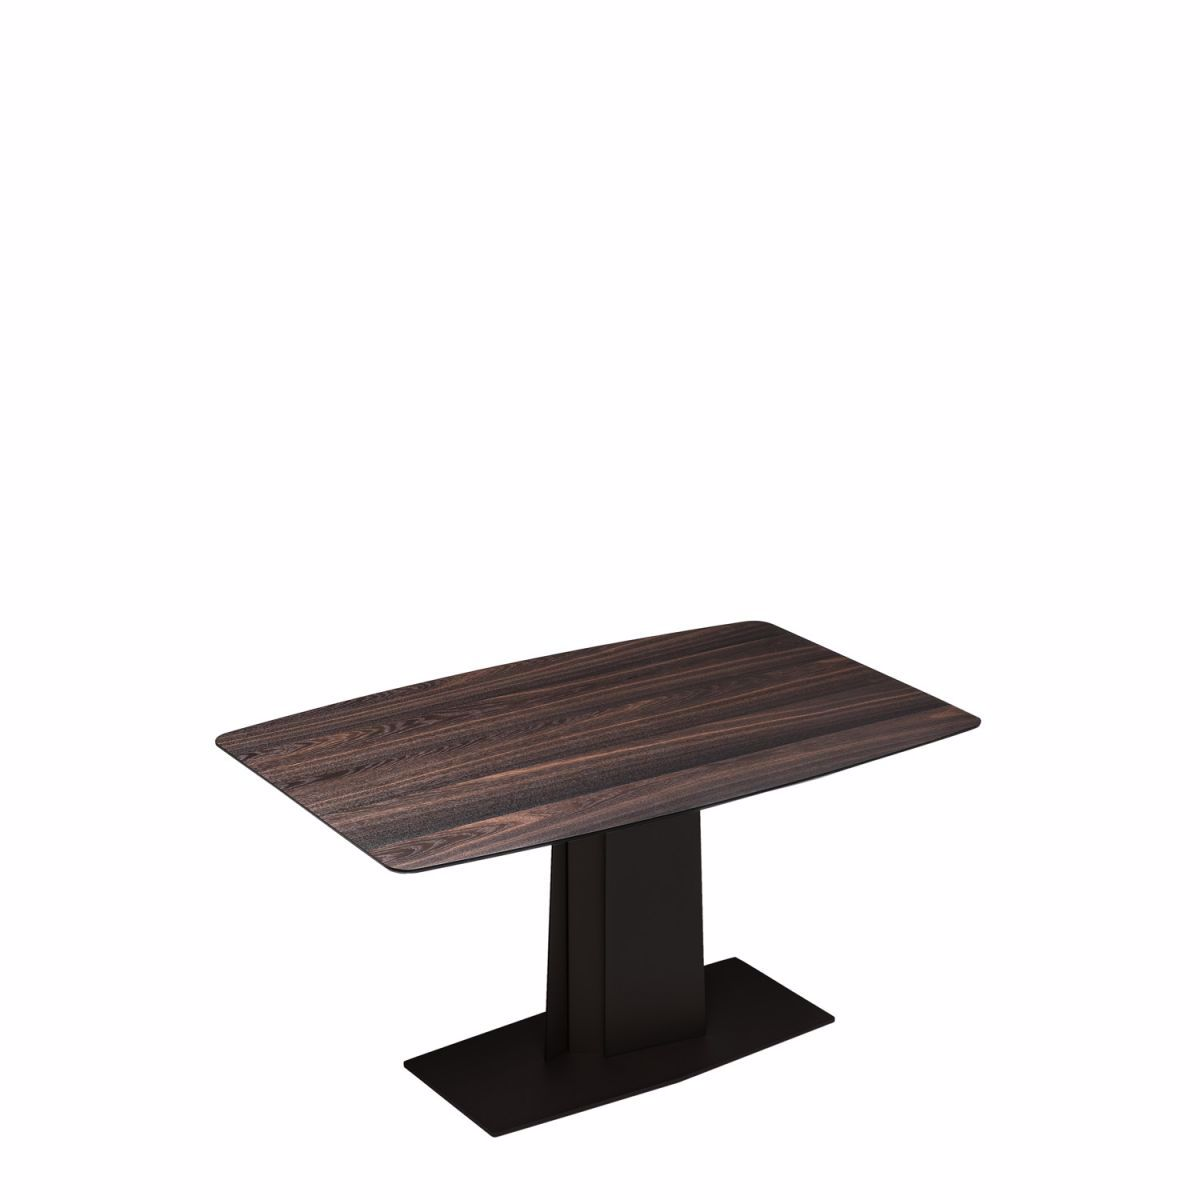 Duffy Wood Dining Table Inspiration Furniture Vancouver Bc